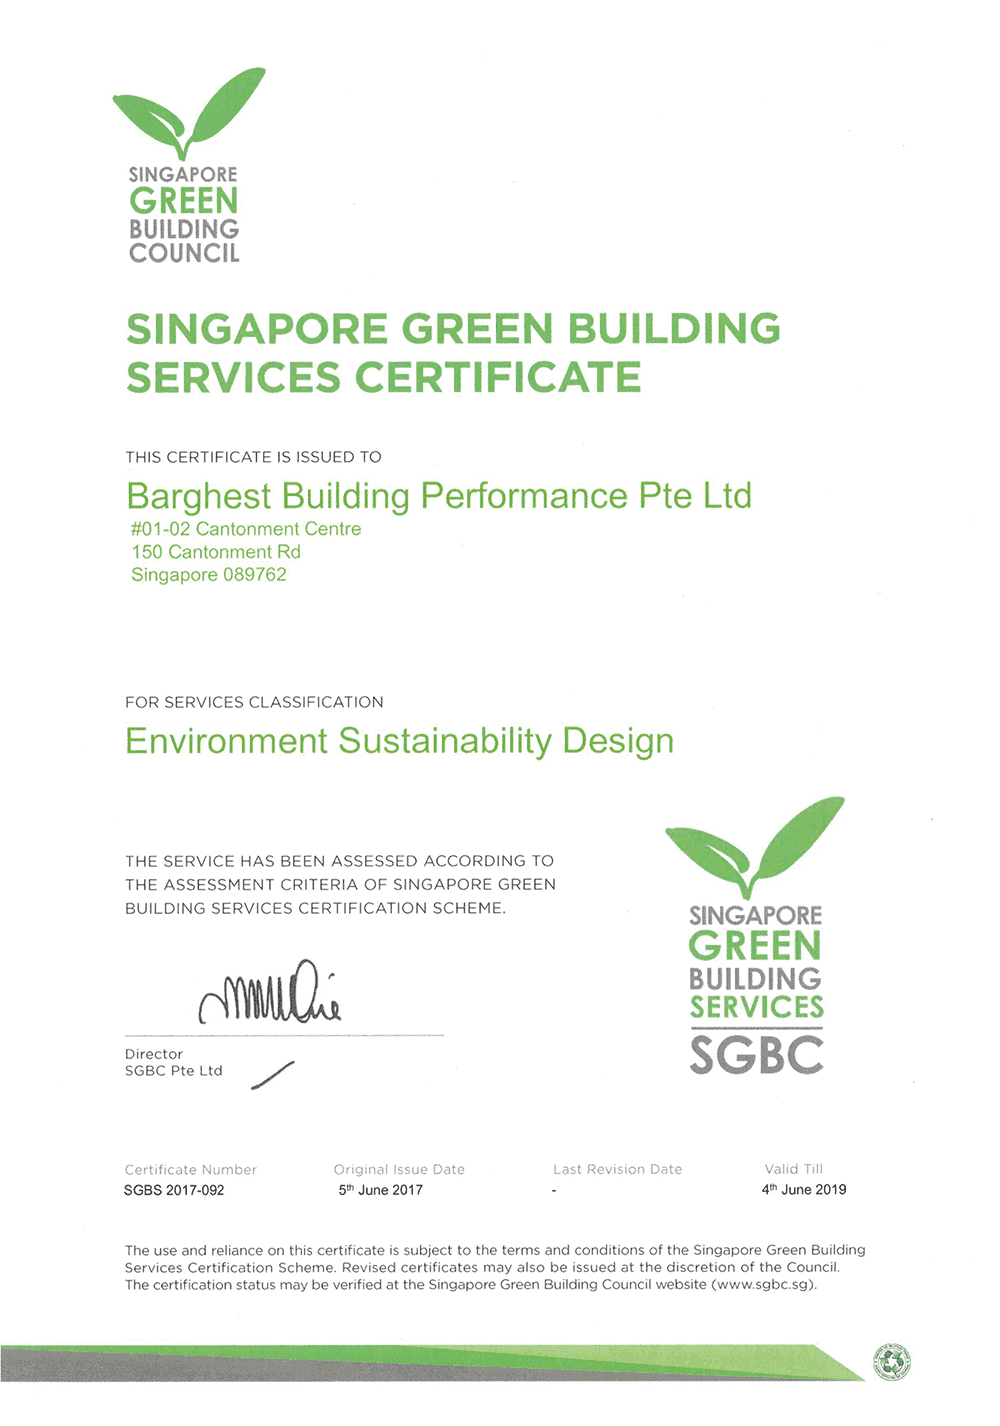 SGBD Environmental Sustainability Design Certification